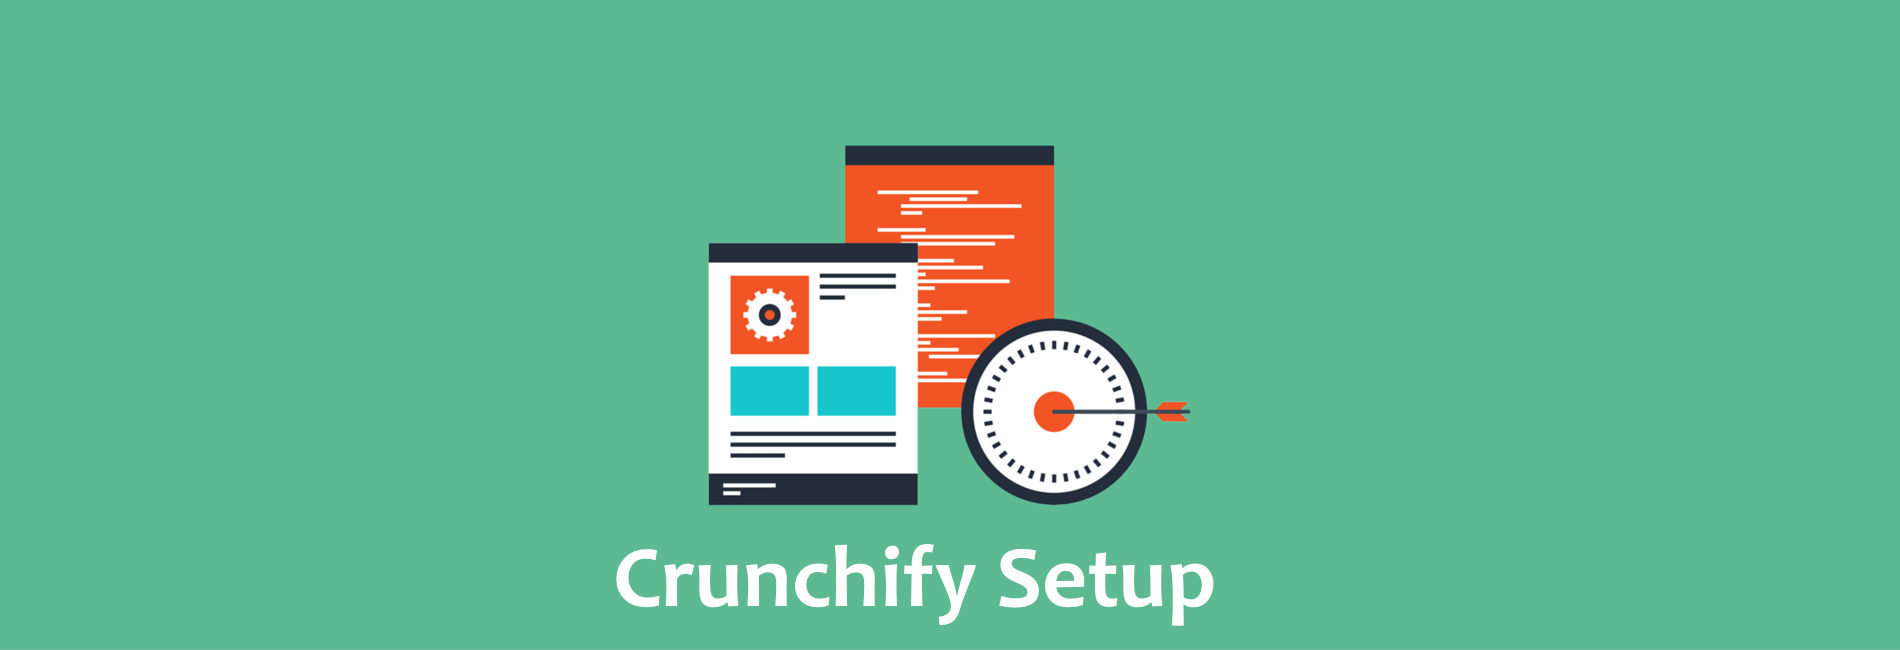 Crunchify Setup